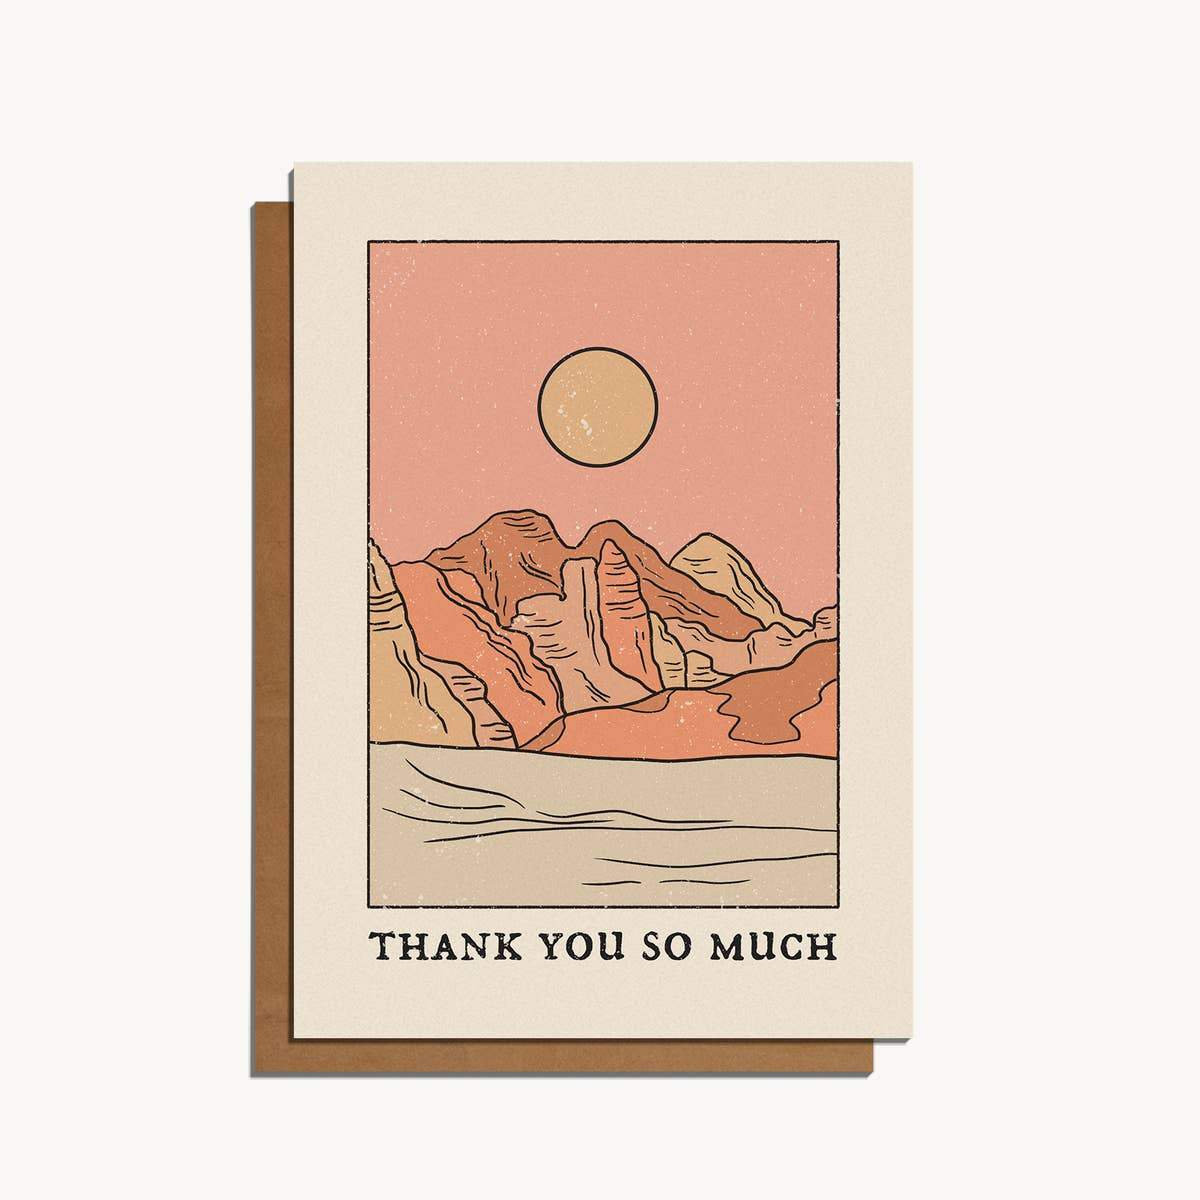 Thank You So Much Card - Cai & Jo -Freehand Market